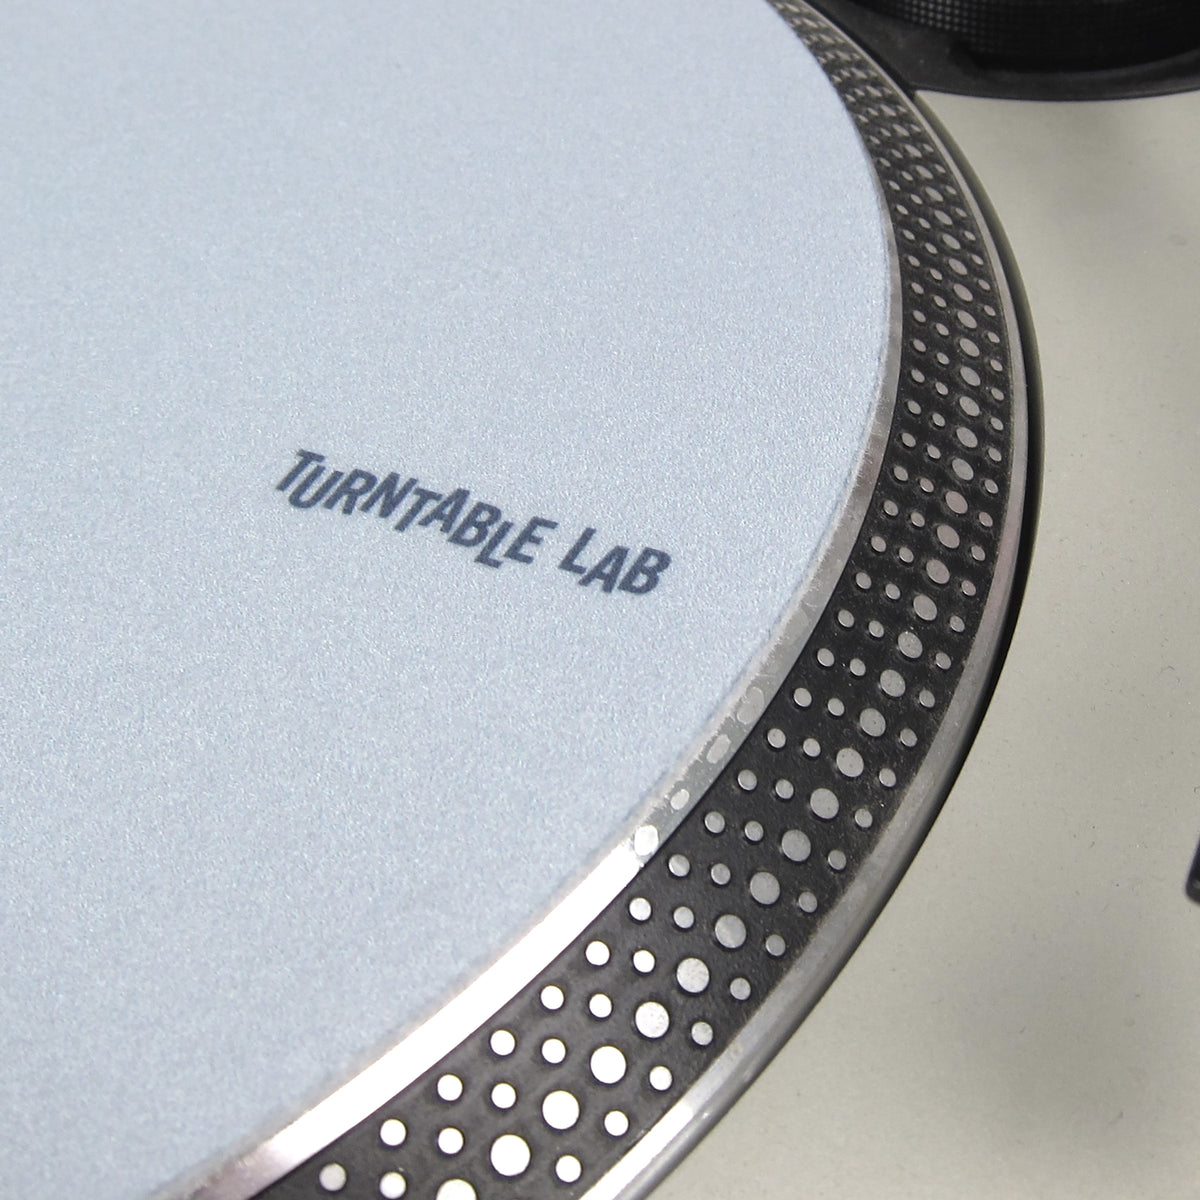 Turntable Lab: Supersoft Slipmats - Grey